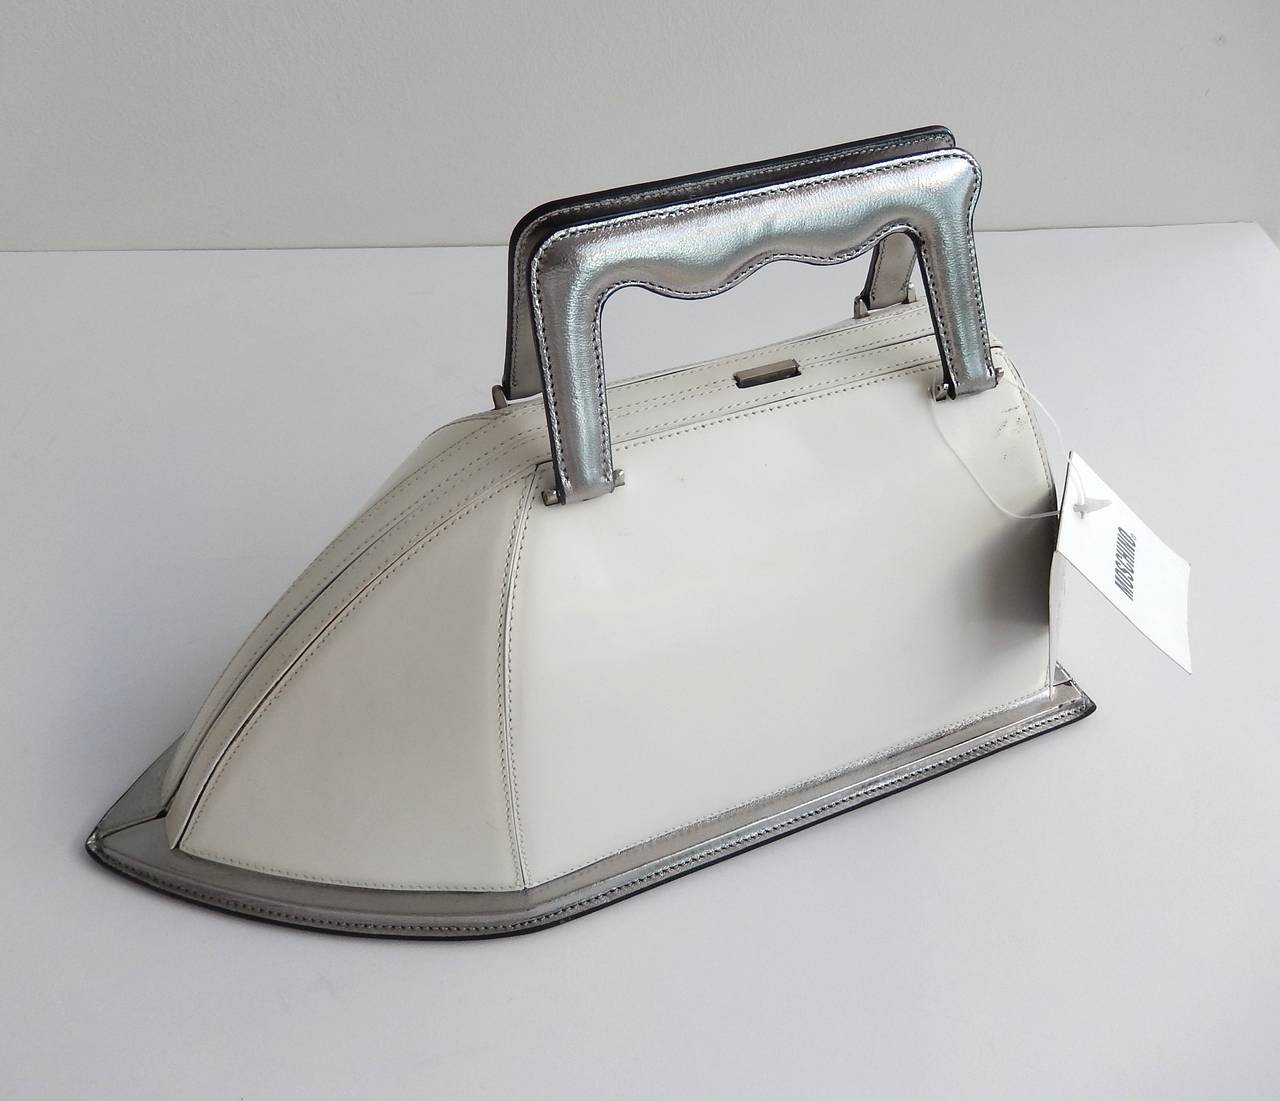 A Rare Handbag By Moschino In The Shape Of Steam Iron